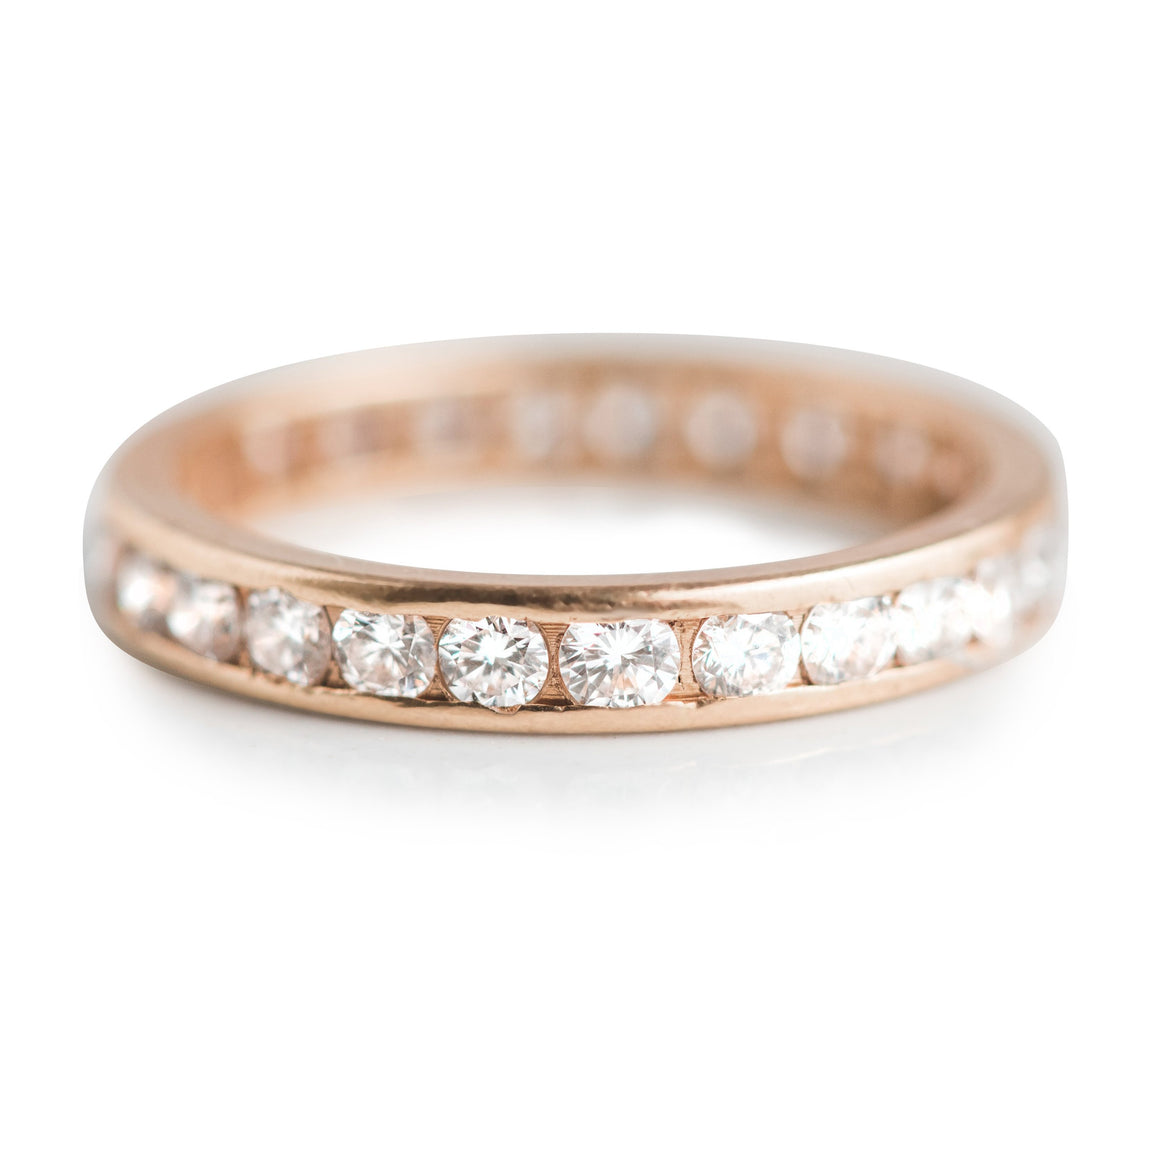 LARGE ESTATE ETERNITY BAND WITH WHITE DIAMONDS AND 18 KARAT YELLOW GOLD